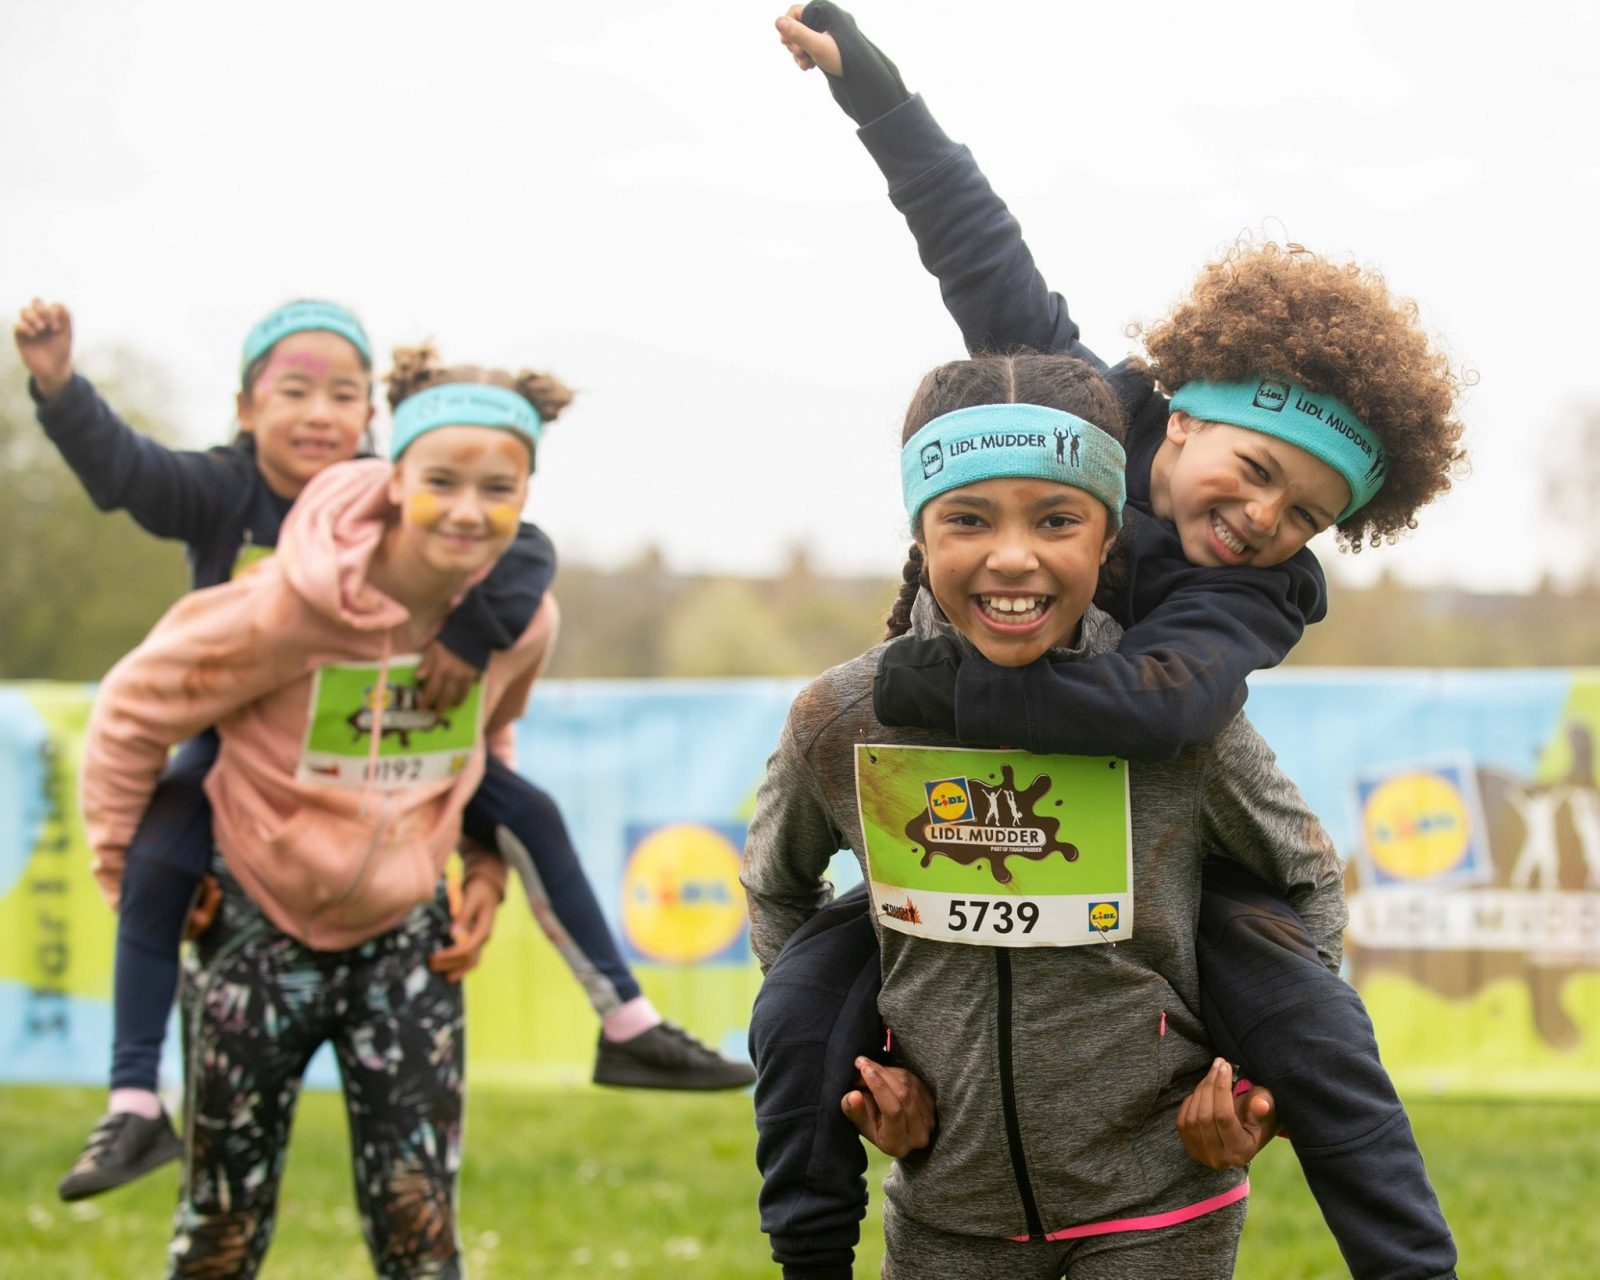 We're very excited to have Lidl GB presenting their Lidl Mudder obstacle course ...